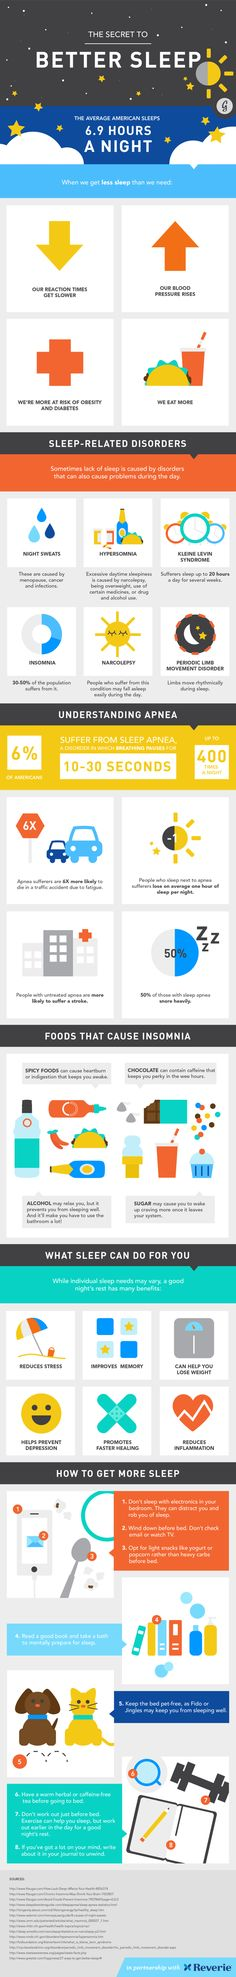 Everything You Need to Know to Sleep Better, Tonight Infographic